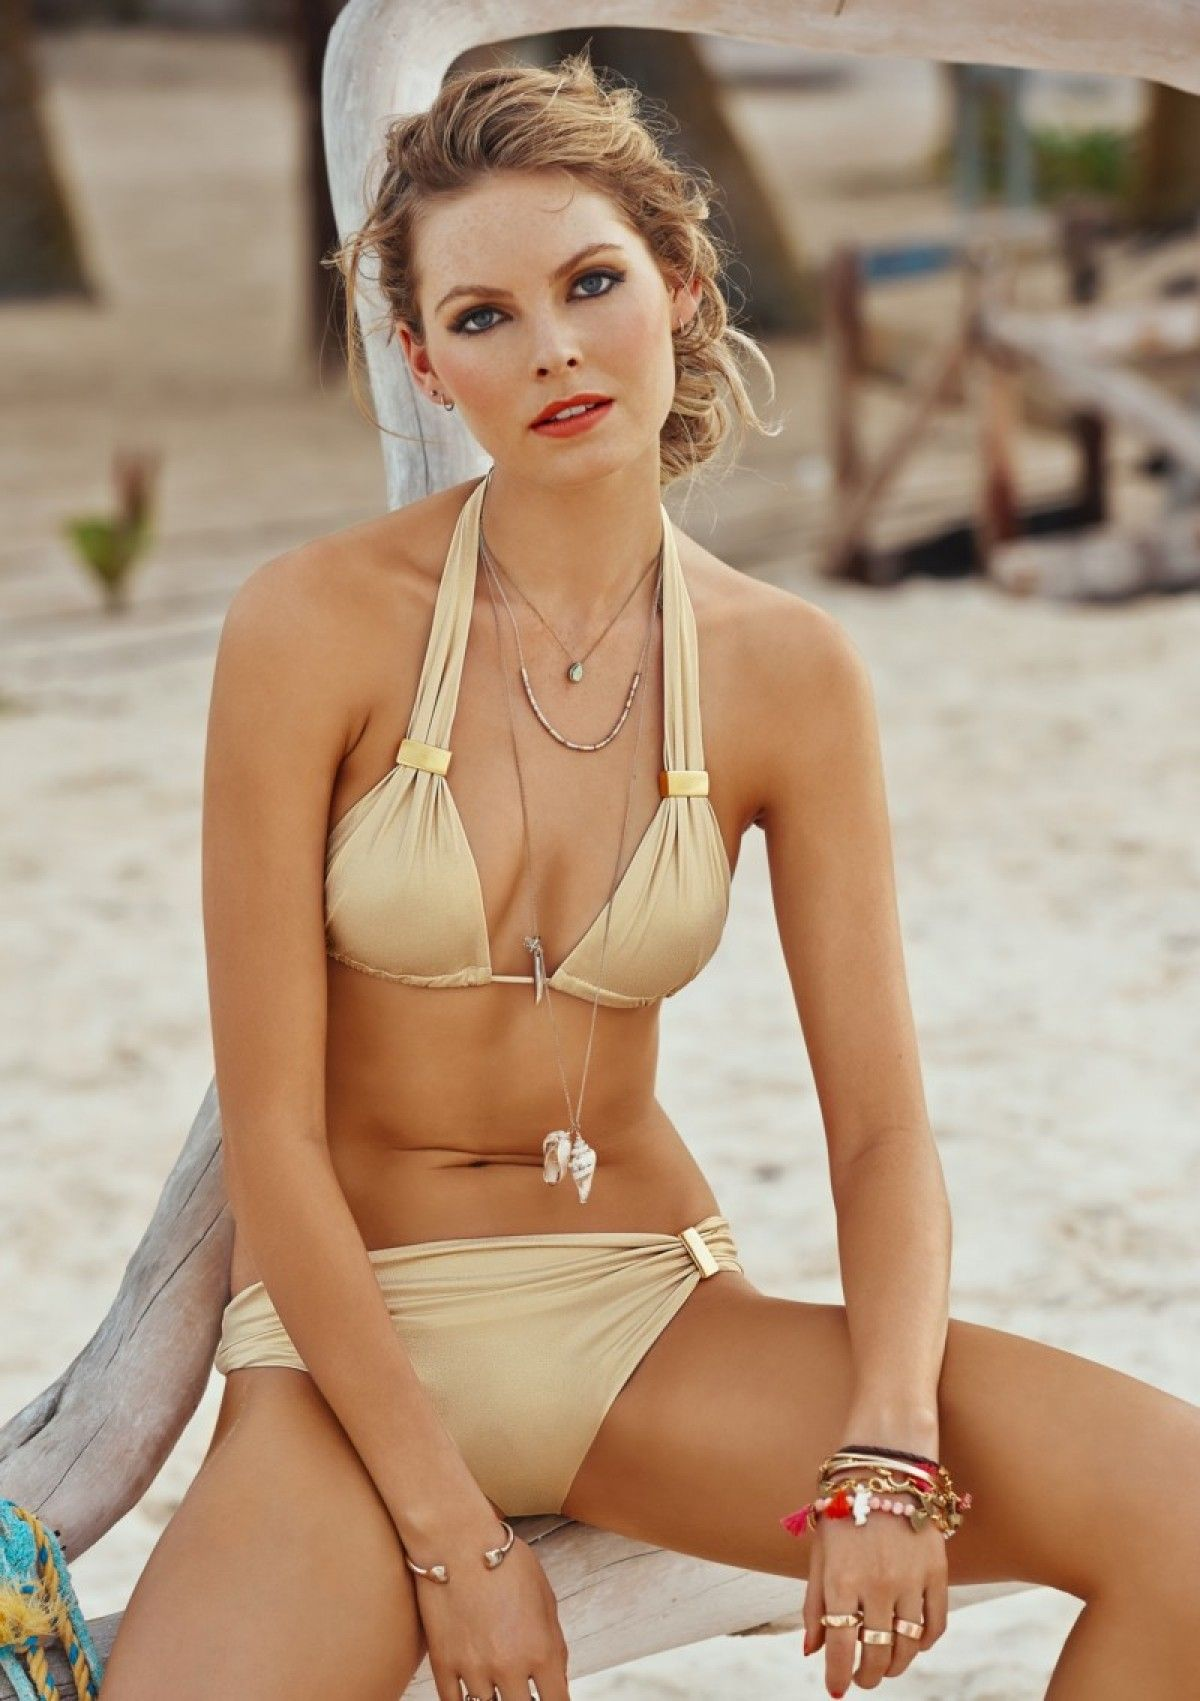 0d11e2fed5c20 2015 Malai Swimwear Gold Elementary Halter Top and Cheeky Bikini Bottom at  butterfliesandbikinis.com